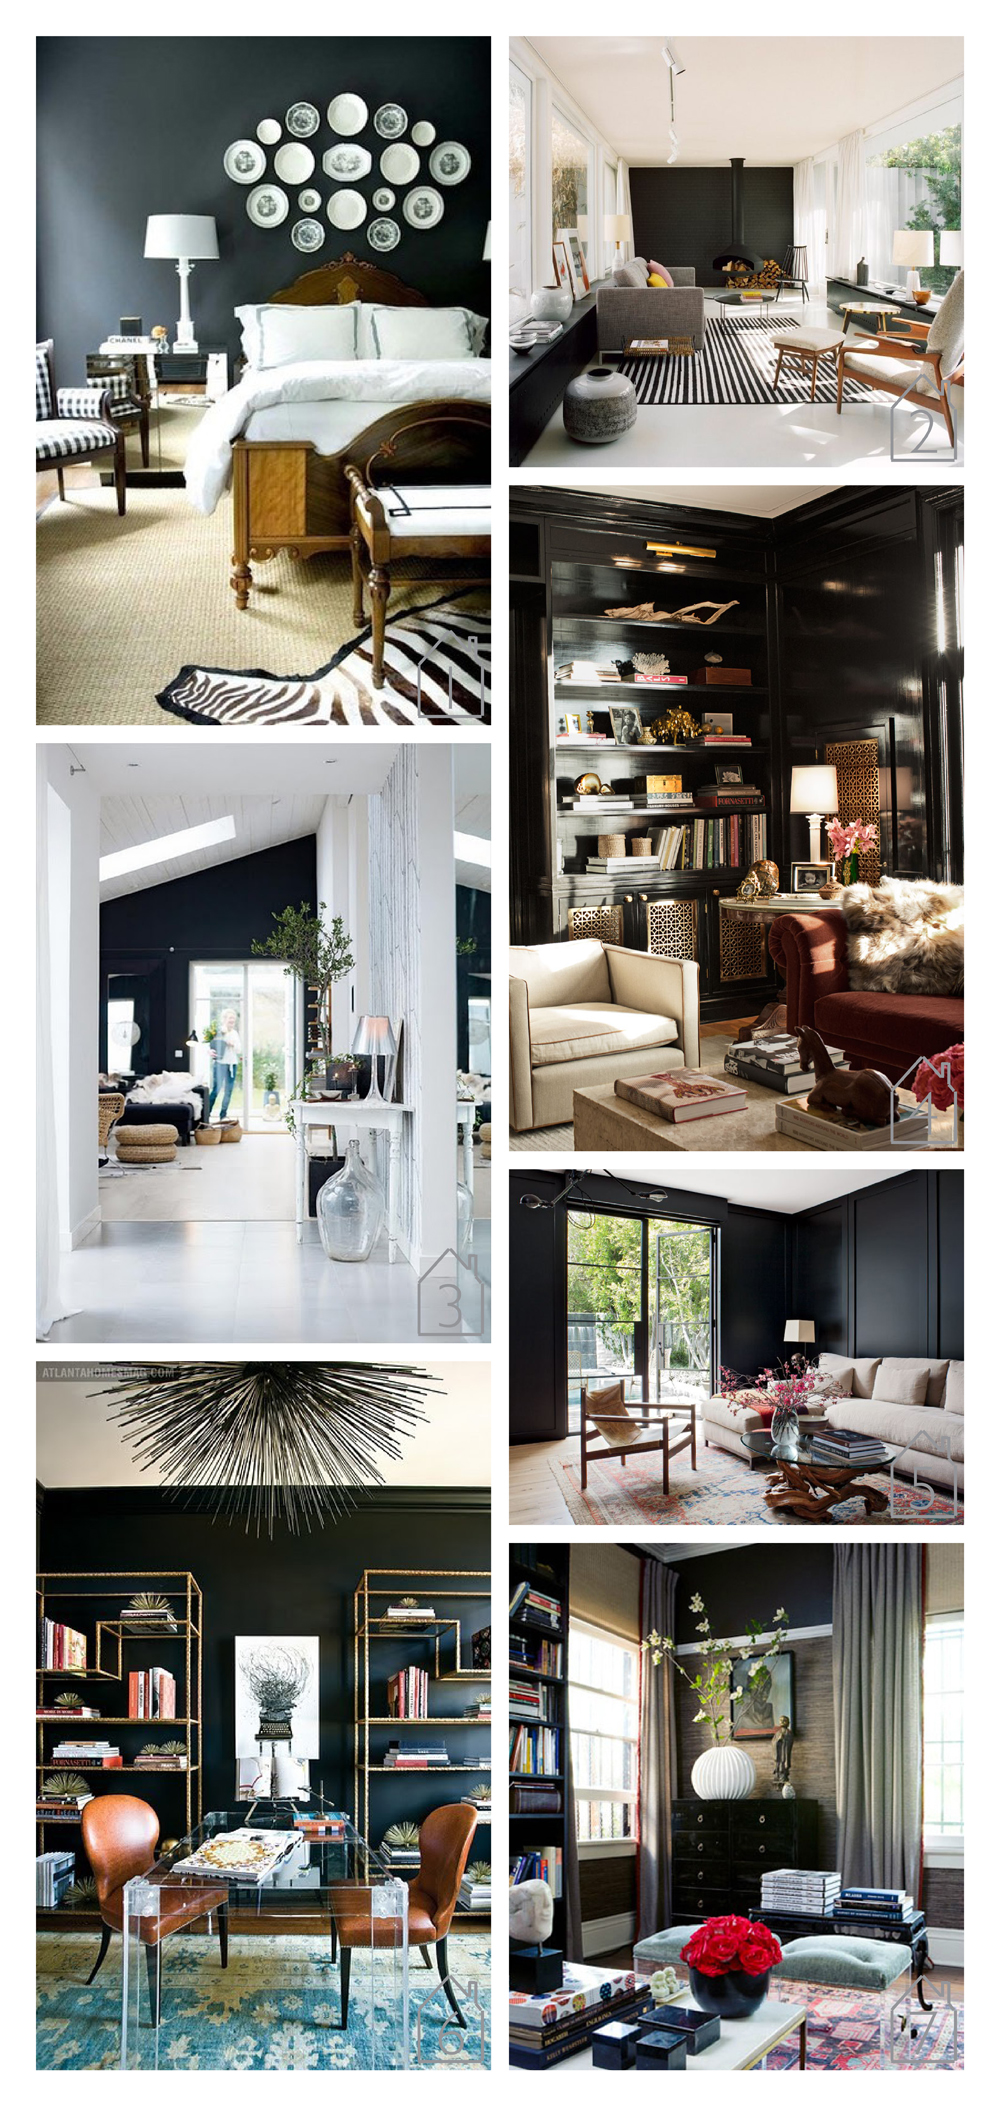 1. source unknown  2. via urdesign by bfs design  3. source unknown  4. via ELLE home of Sasha Adler  5. via Architectural Digest home of Jenni Kayne  6. via The Peak of Tres Chic original published in Atlanta Homes and Lifestyles 7. via small shop blog design by Gabriel Hendifar